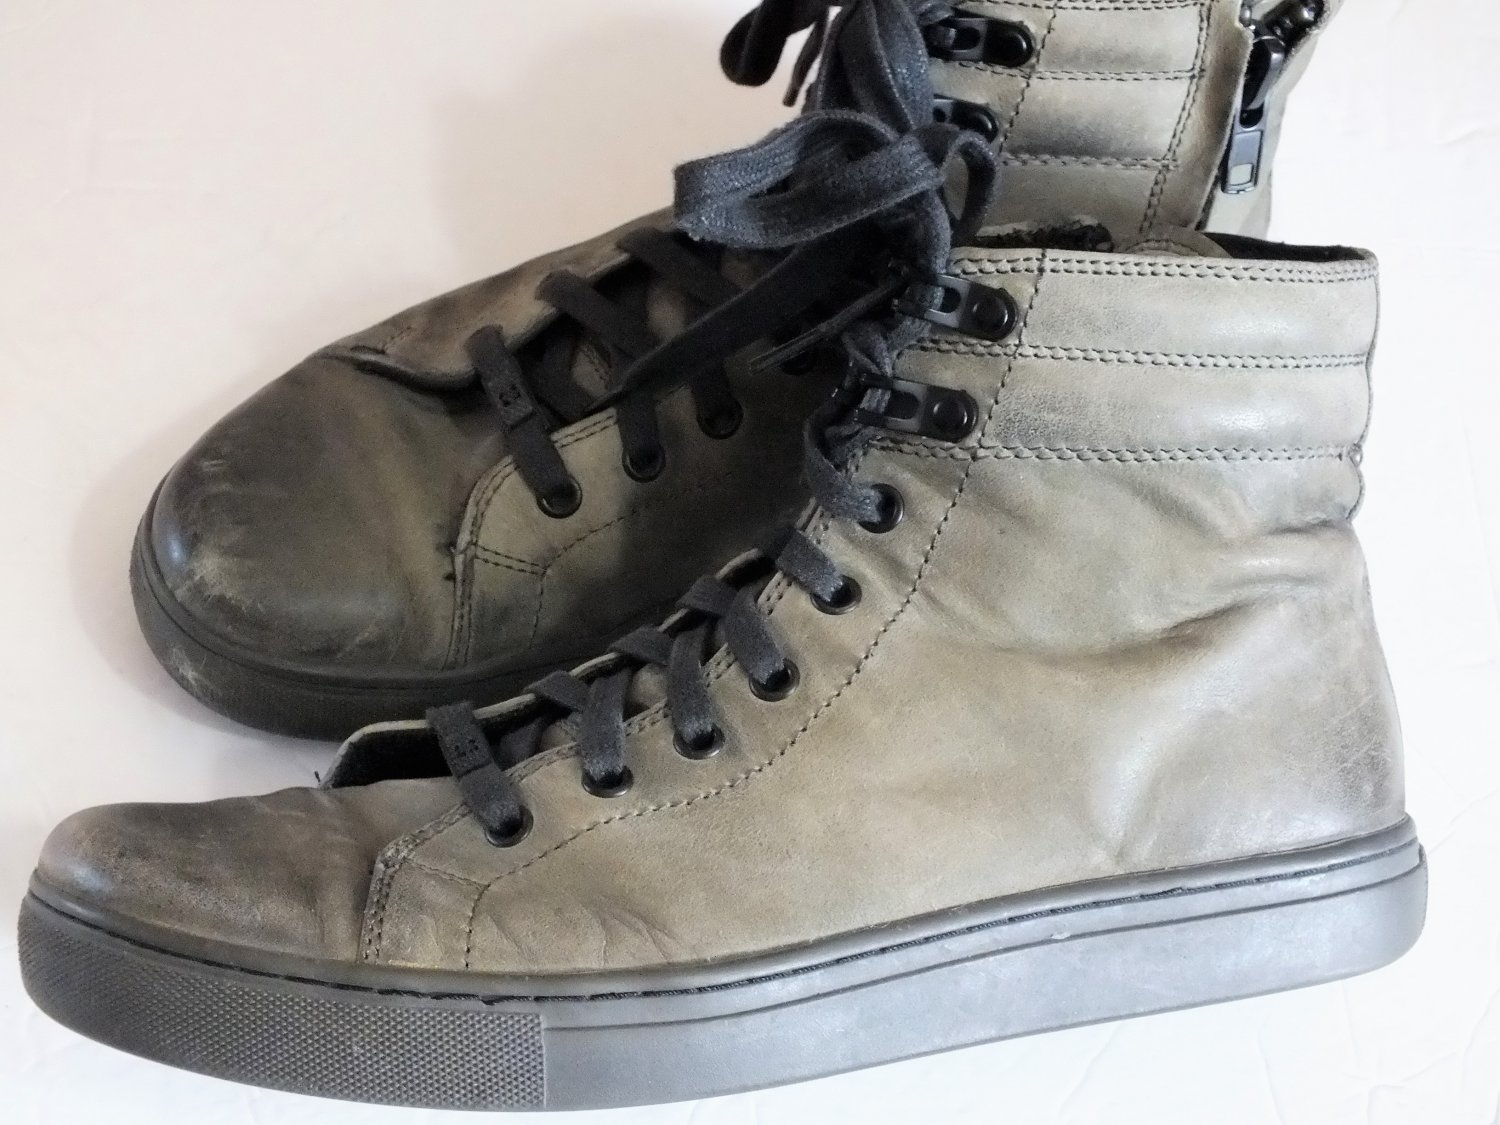 Kenneth Cole Reactions brown leather ankle boots men size 9.5M